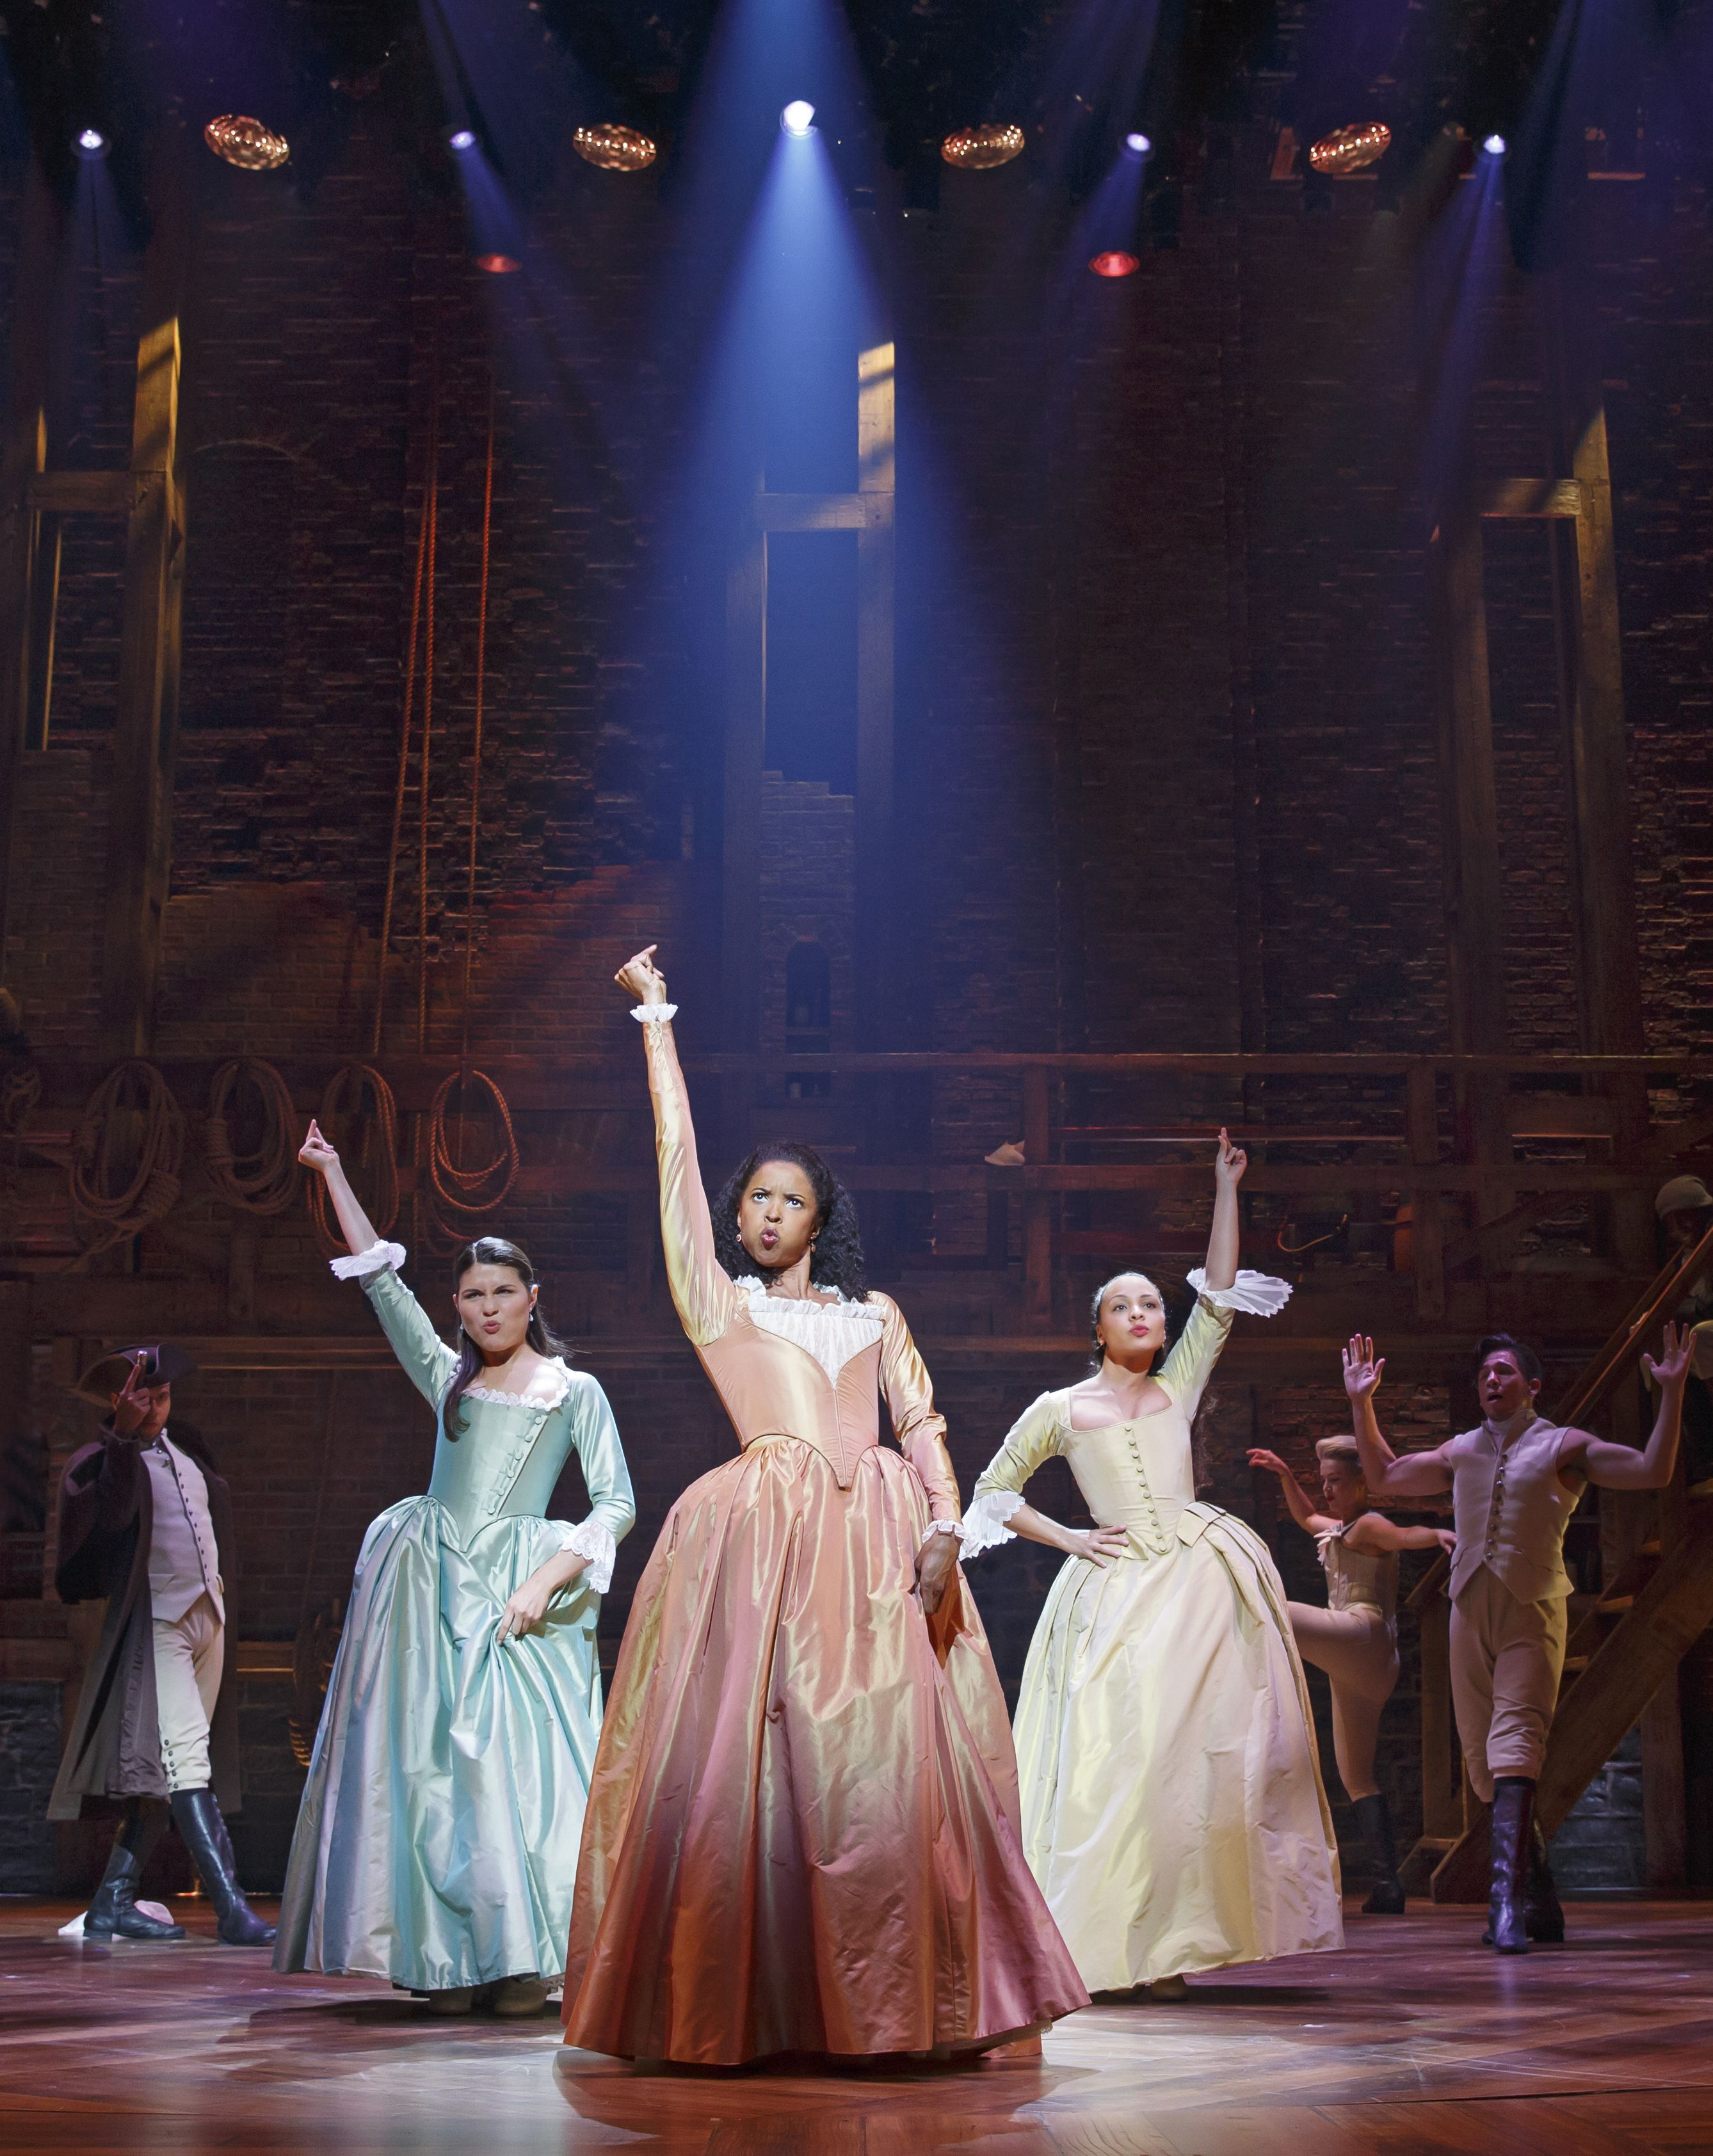 A recorded version of Hamilton is coming to TV screens this autumn